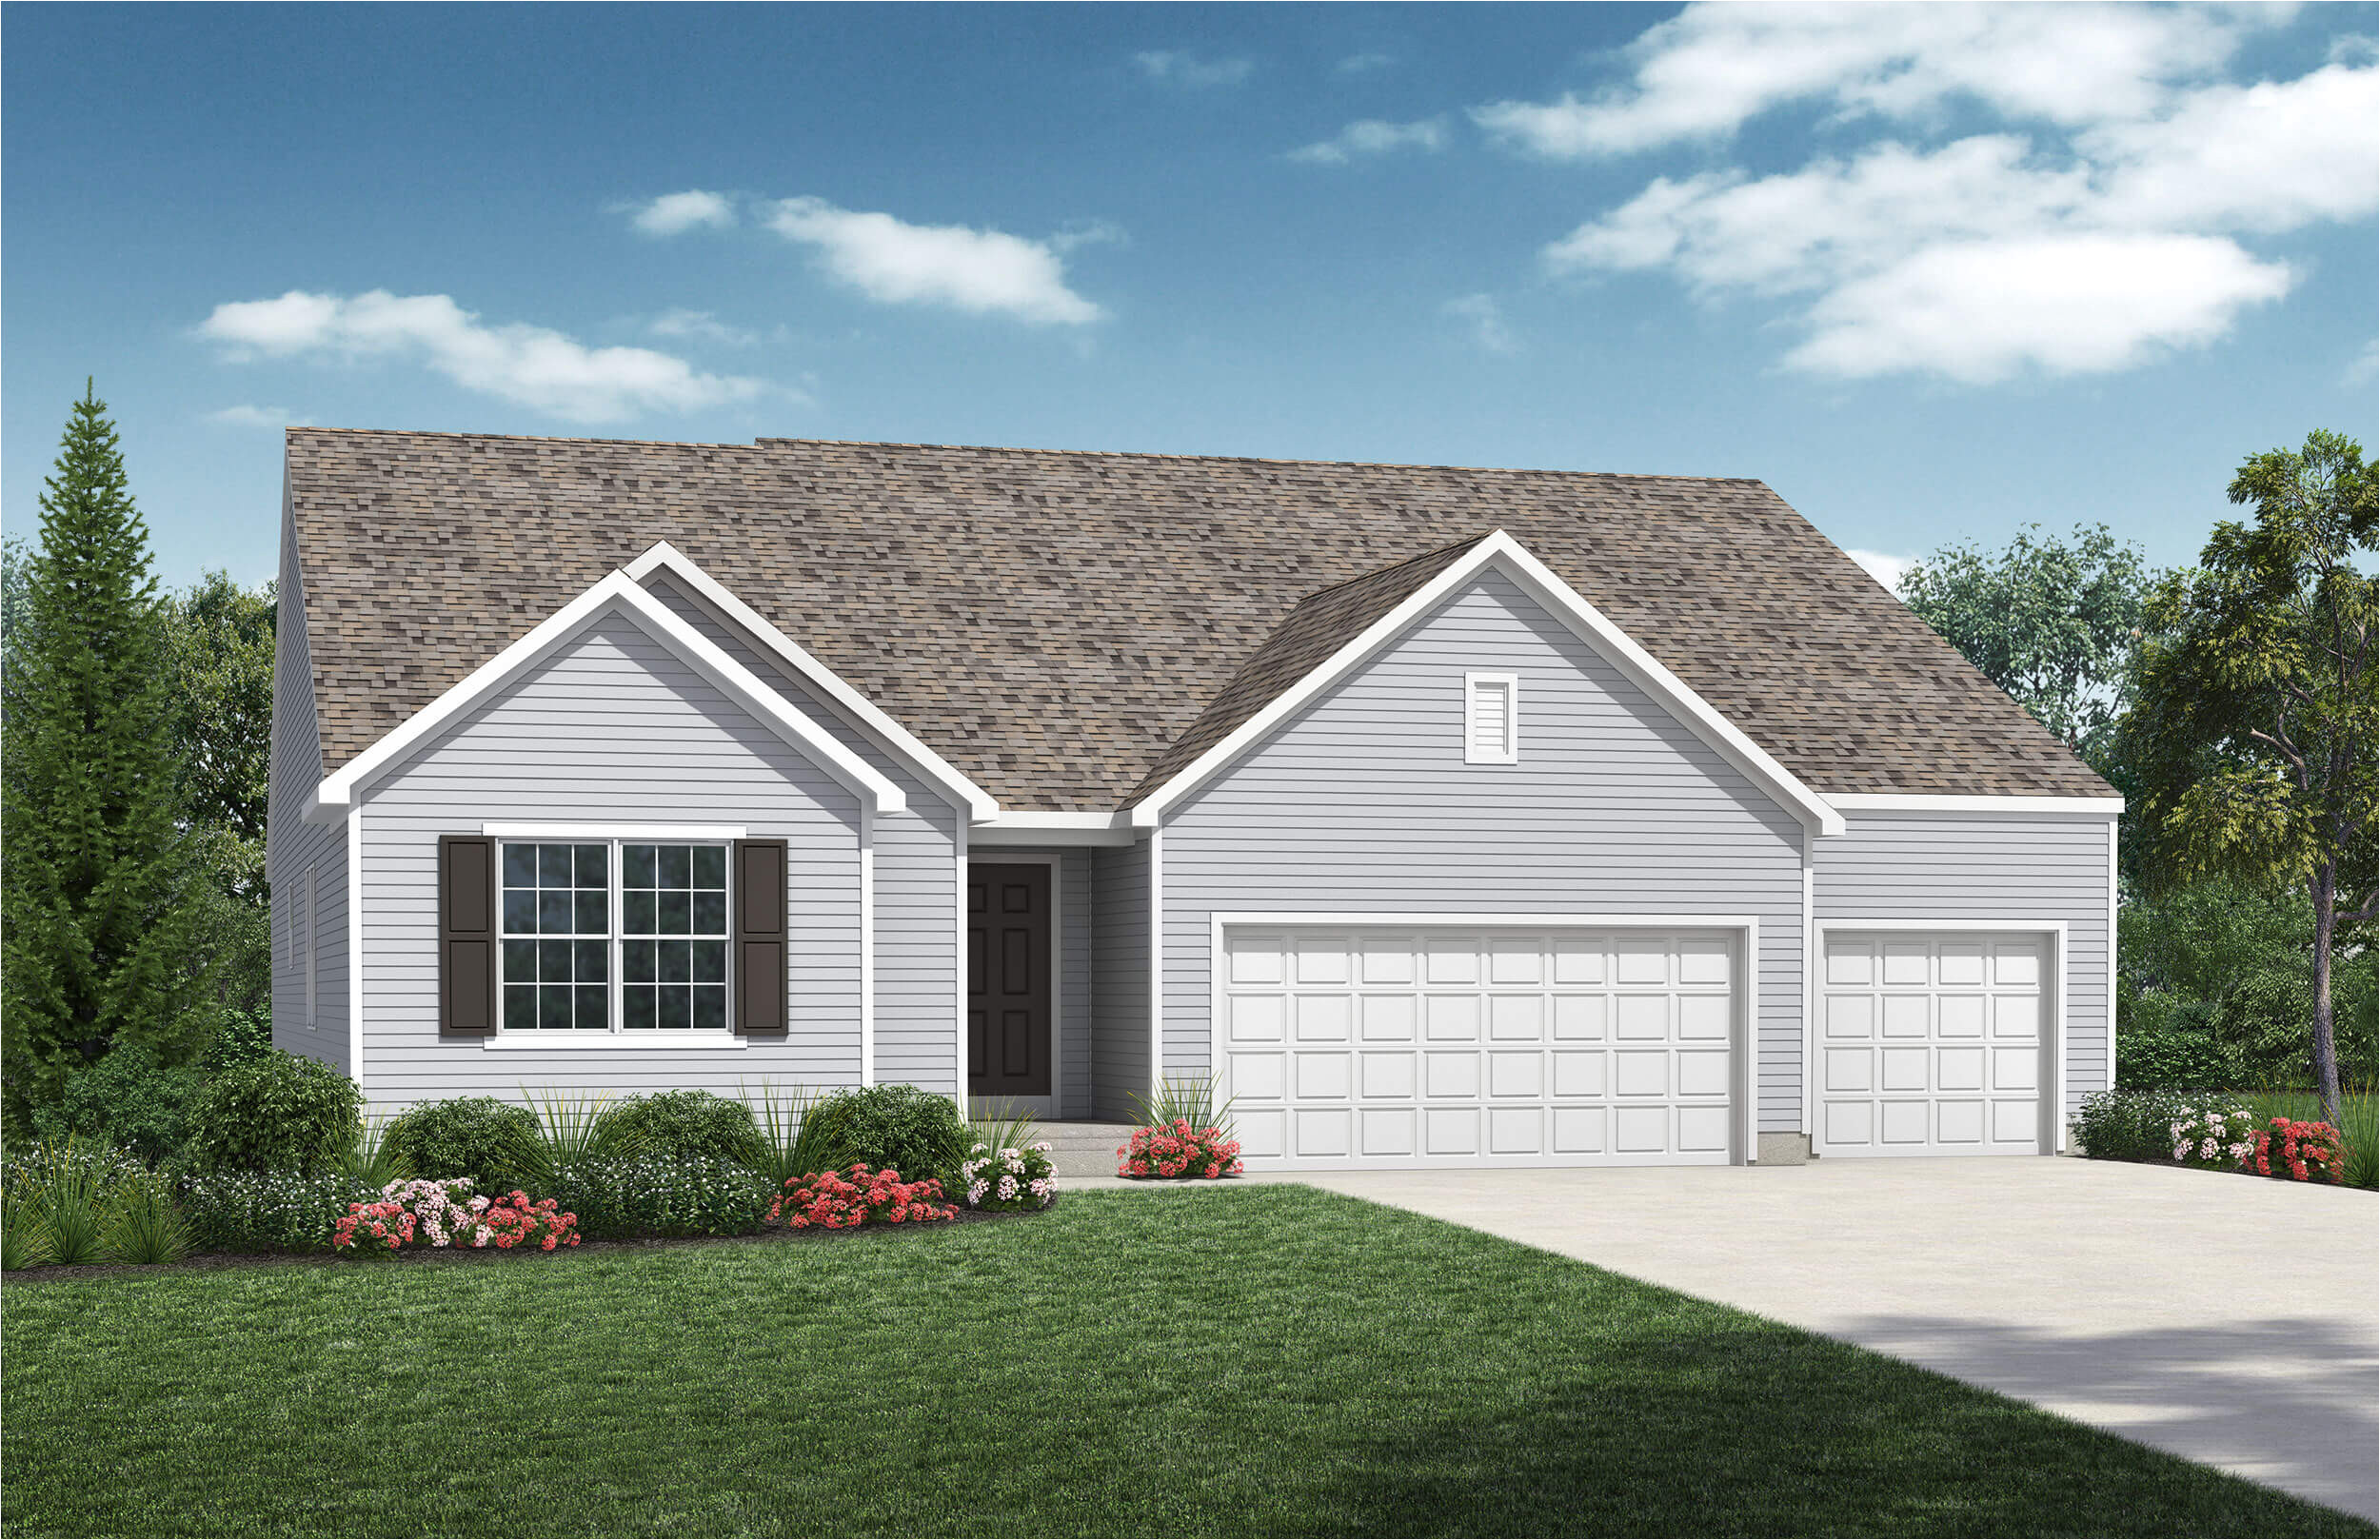 Jacksonville oregon Homes for Sale by Owner Meadows Of Mill Creek In Ostrander Oh New Homes Floor Plans by